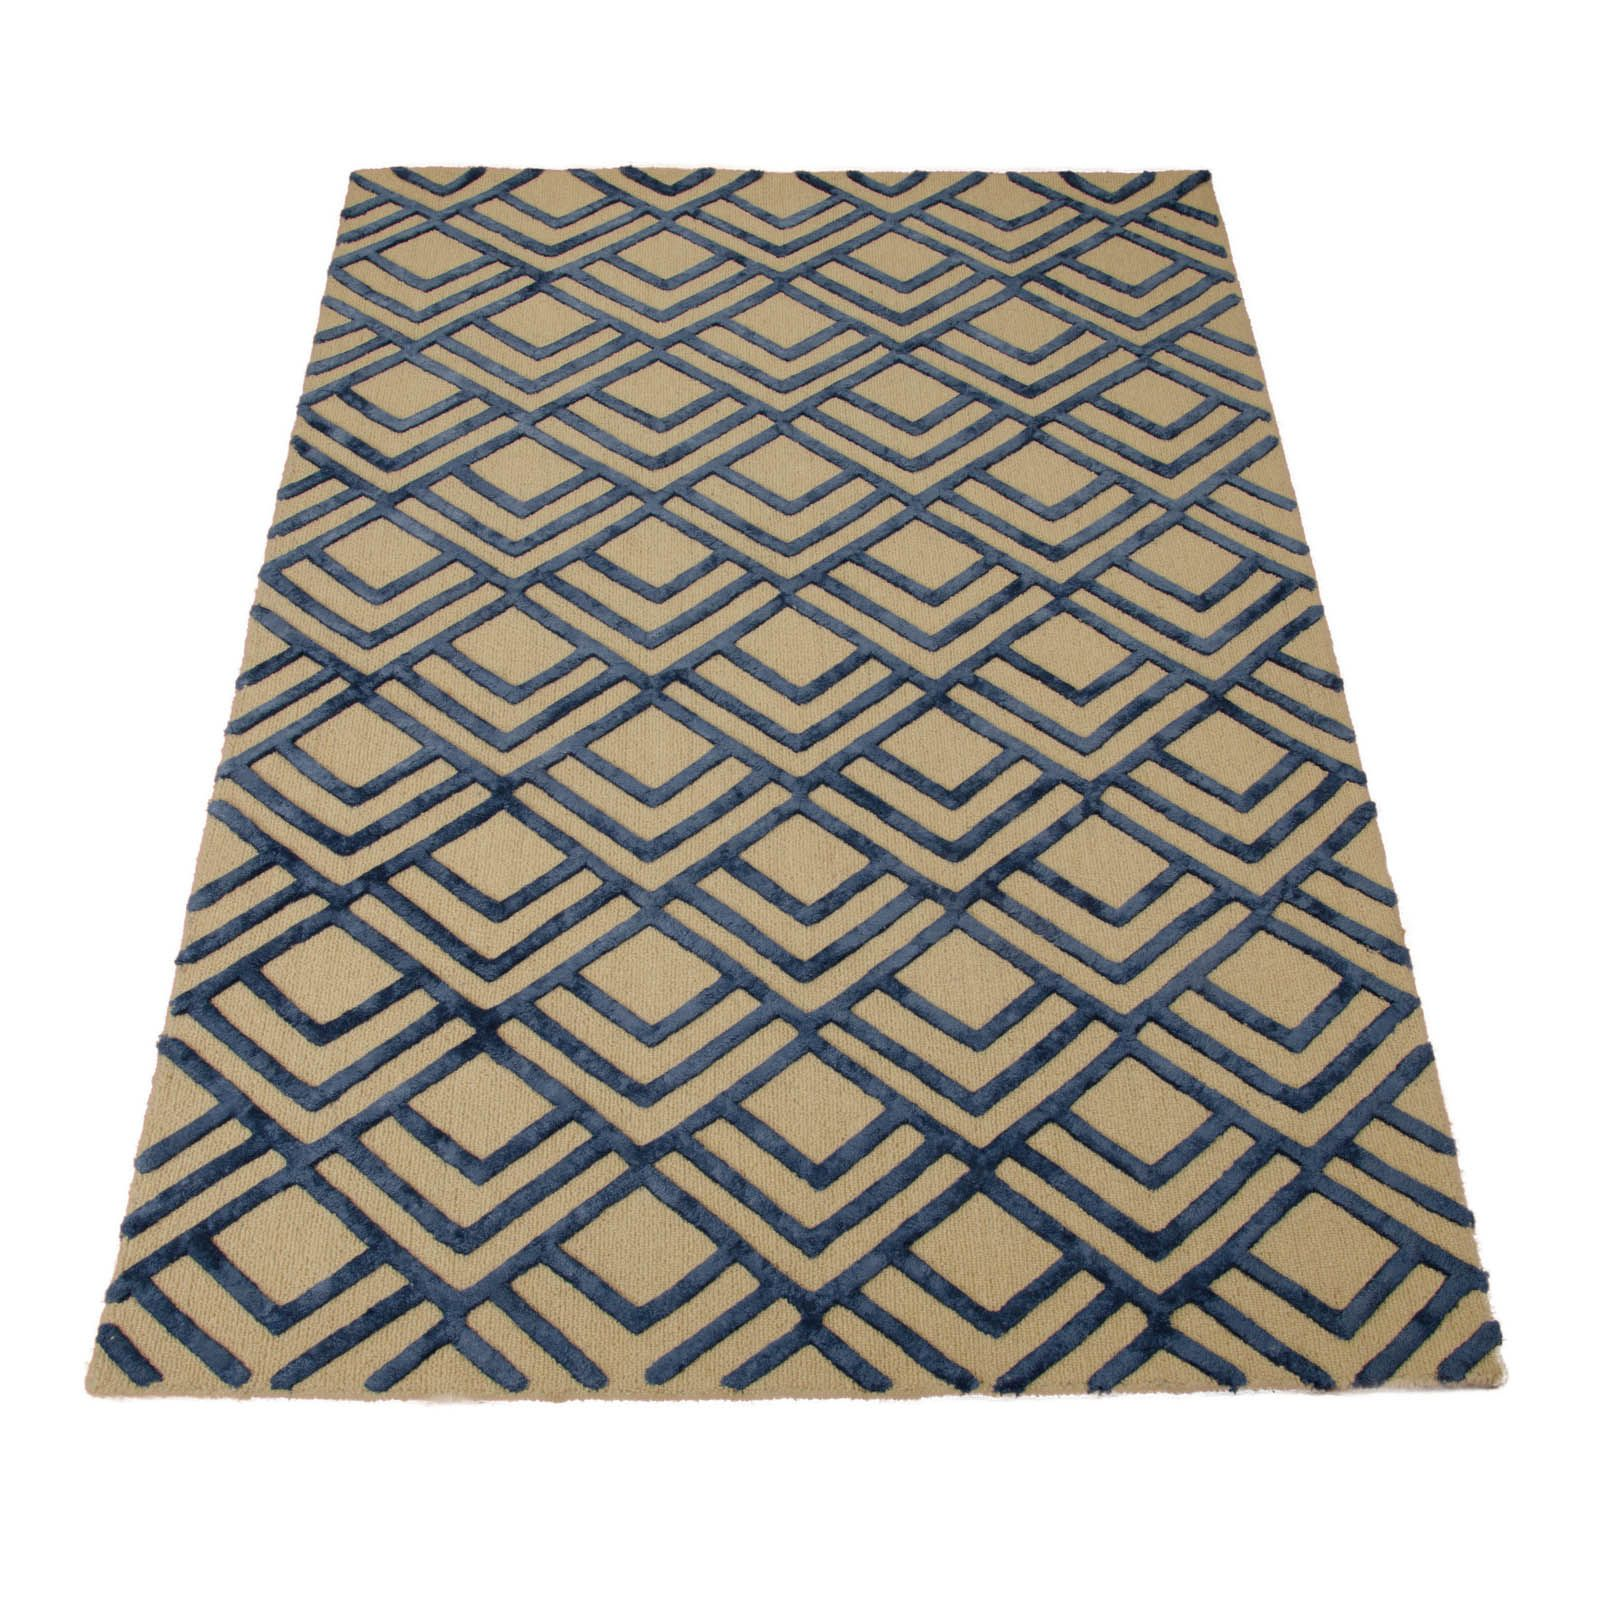 Strata Rugs Stt06 In Ivory And Navy Buy Online From The Rug Seller Uk Rugs Rugs On Carpet Rug Direct